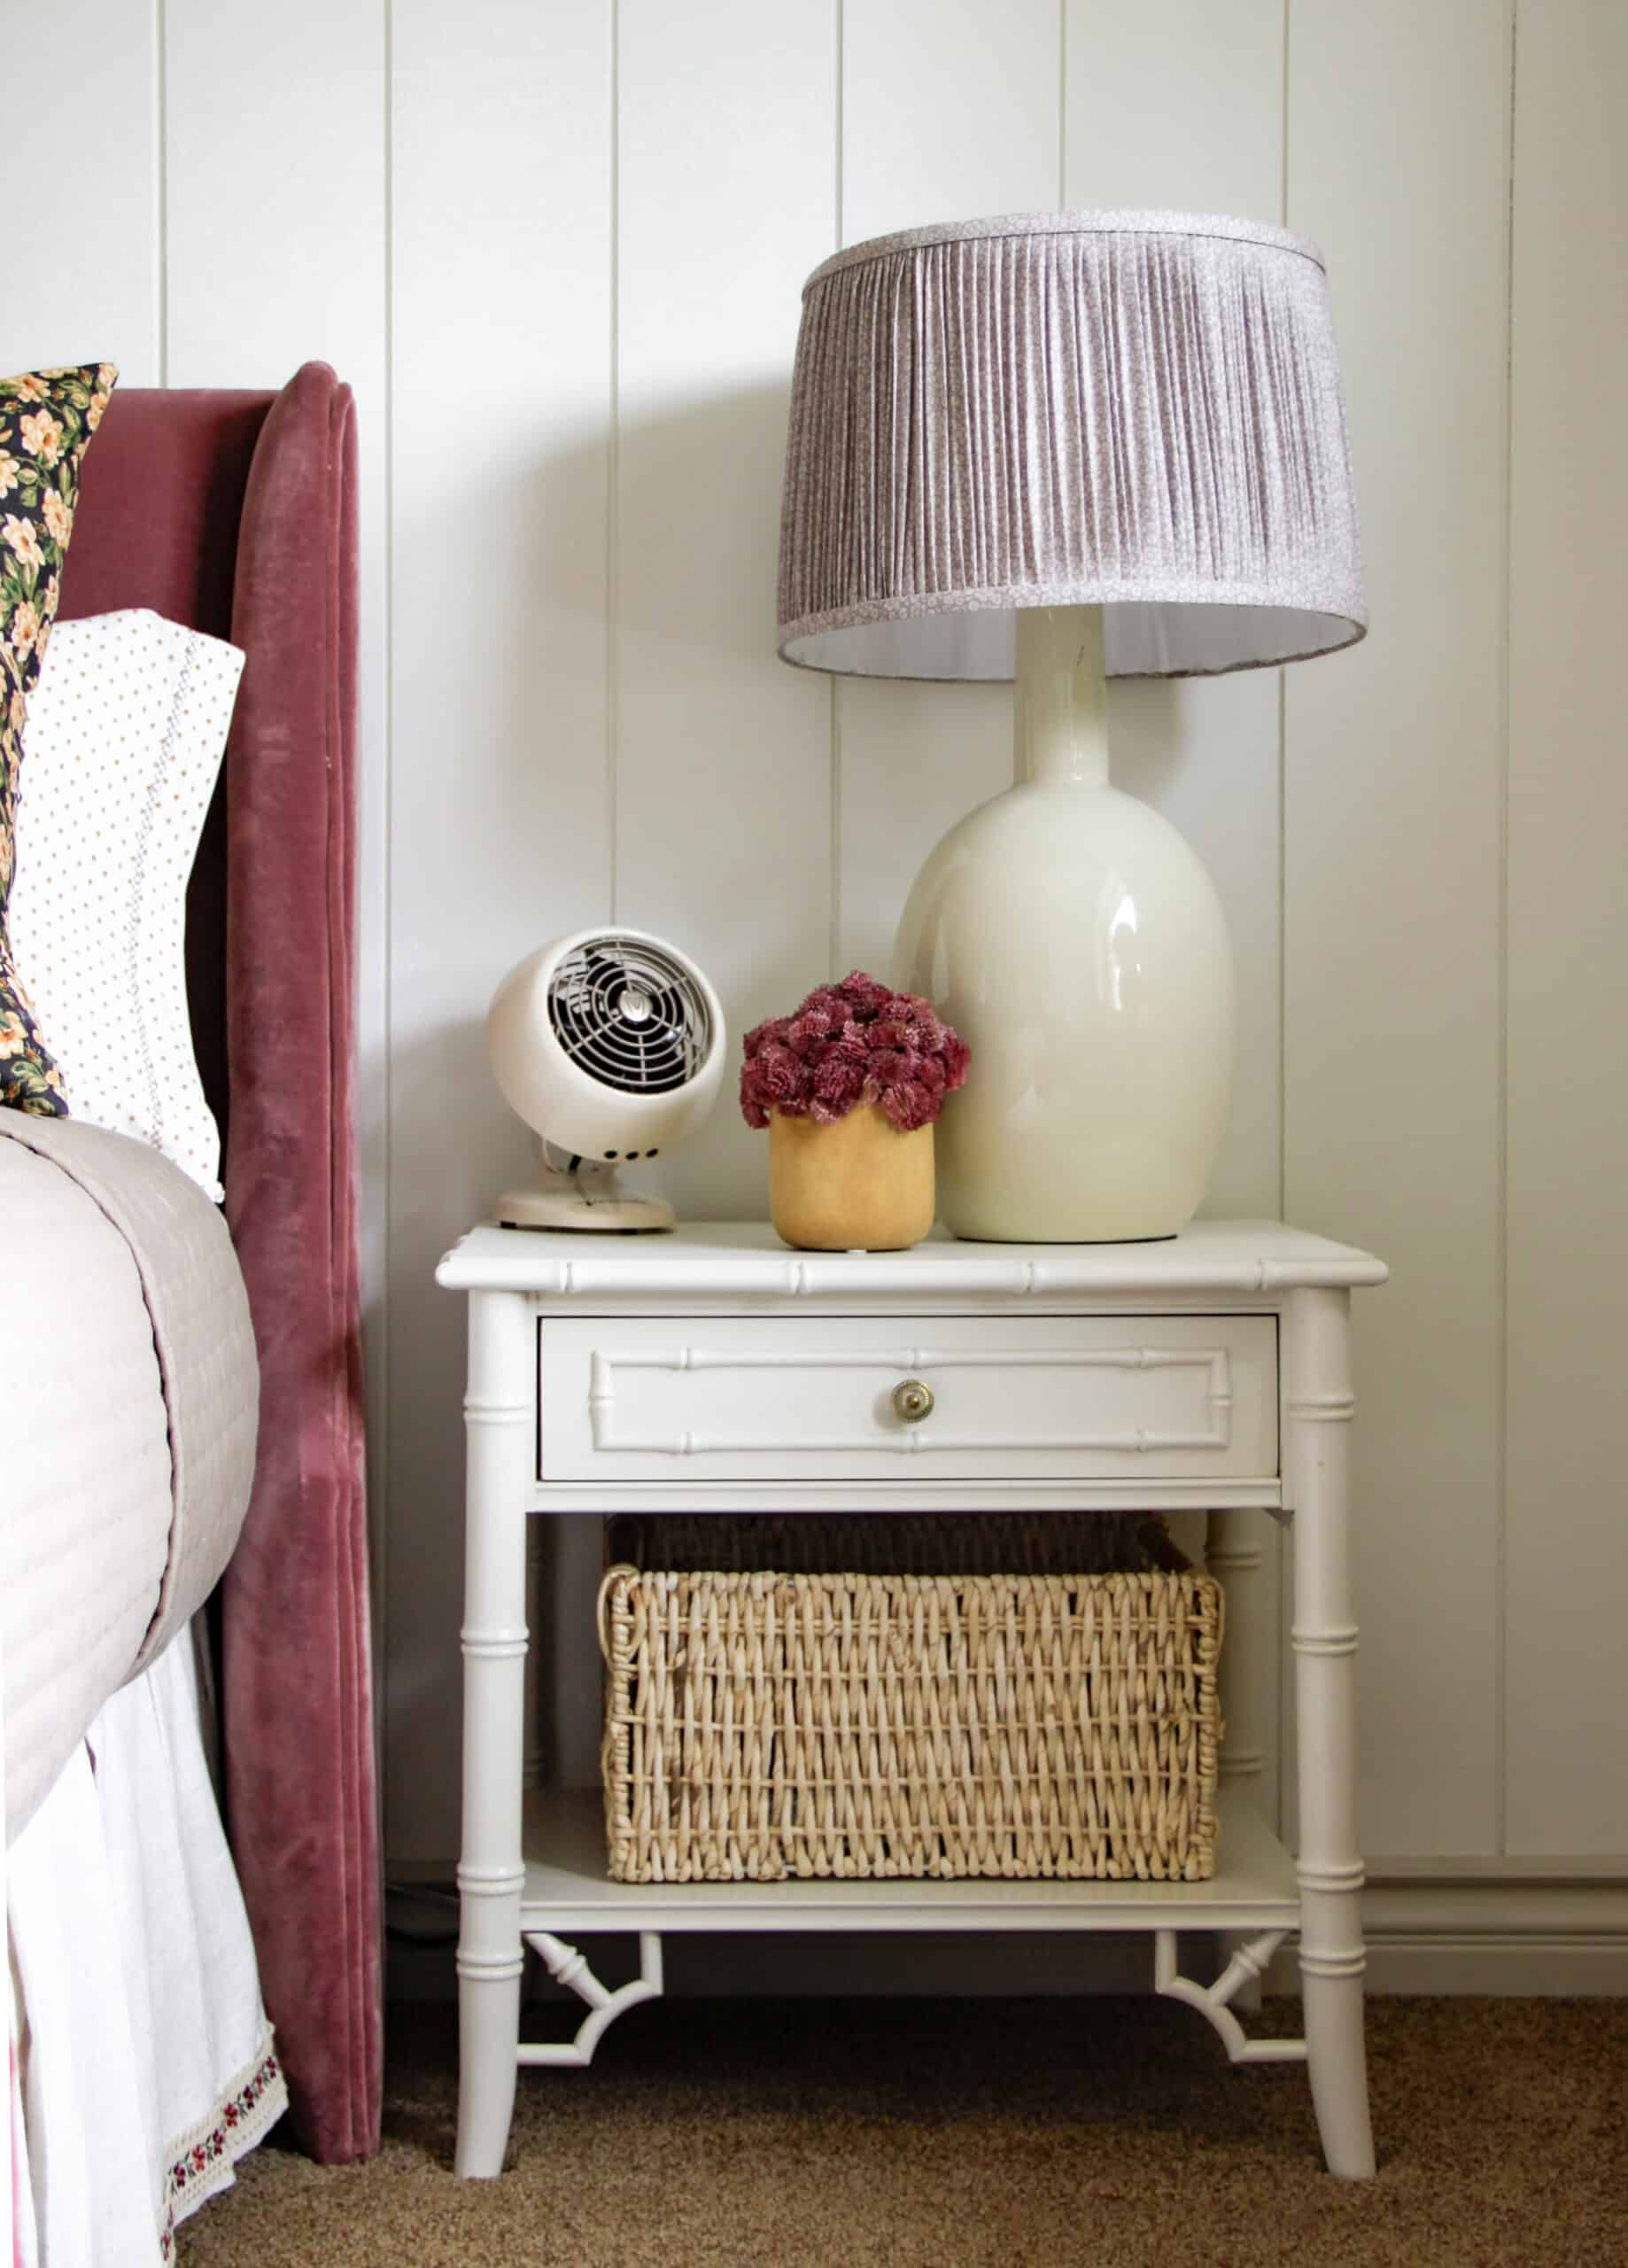 white bamboo nightstand with basket, lamp, fan